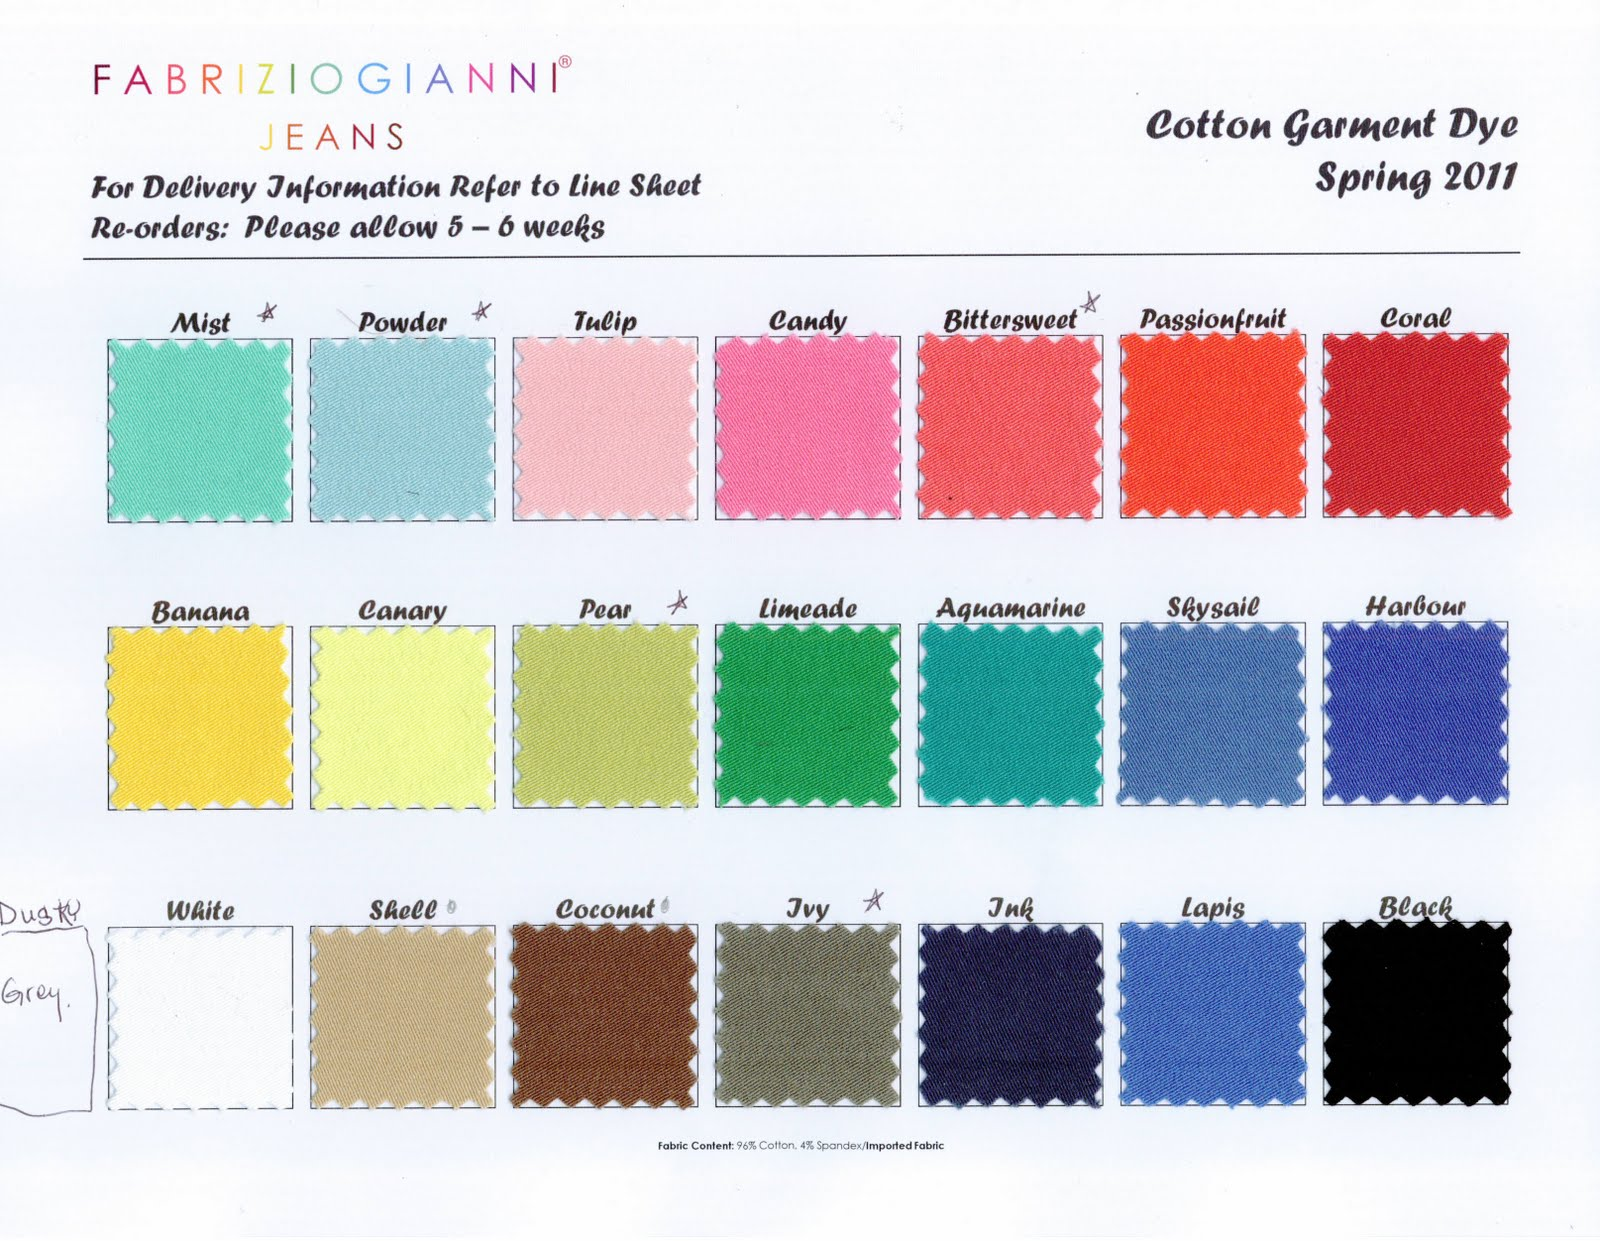 Bambulei color charts for springsummer 2011 infobambulei or call 808 823 8641 if you would like to pre order any of these colors if you would like to see any other companies color chart nvjuhfo Gallery